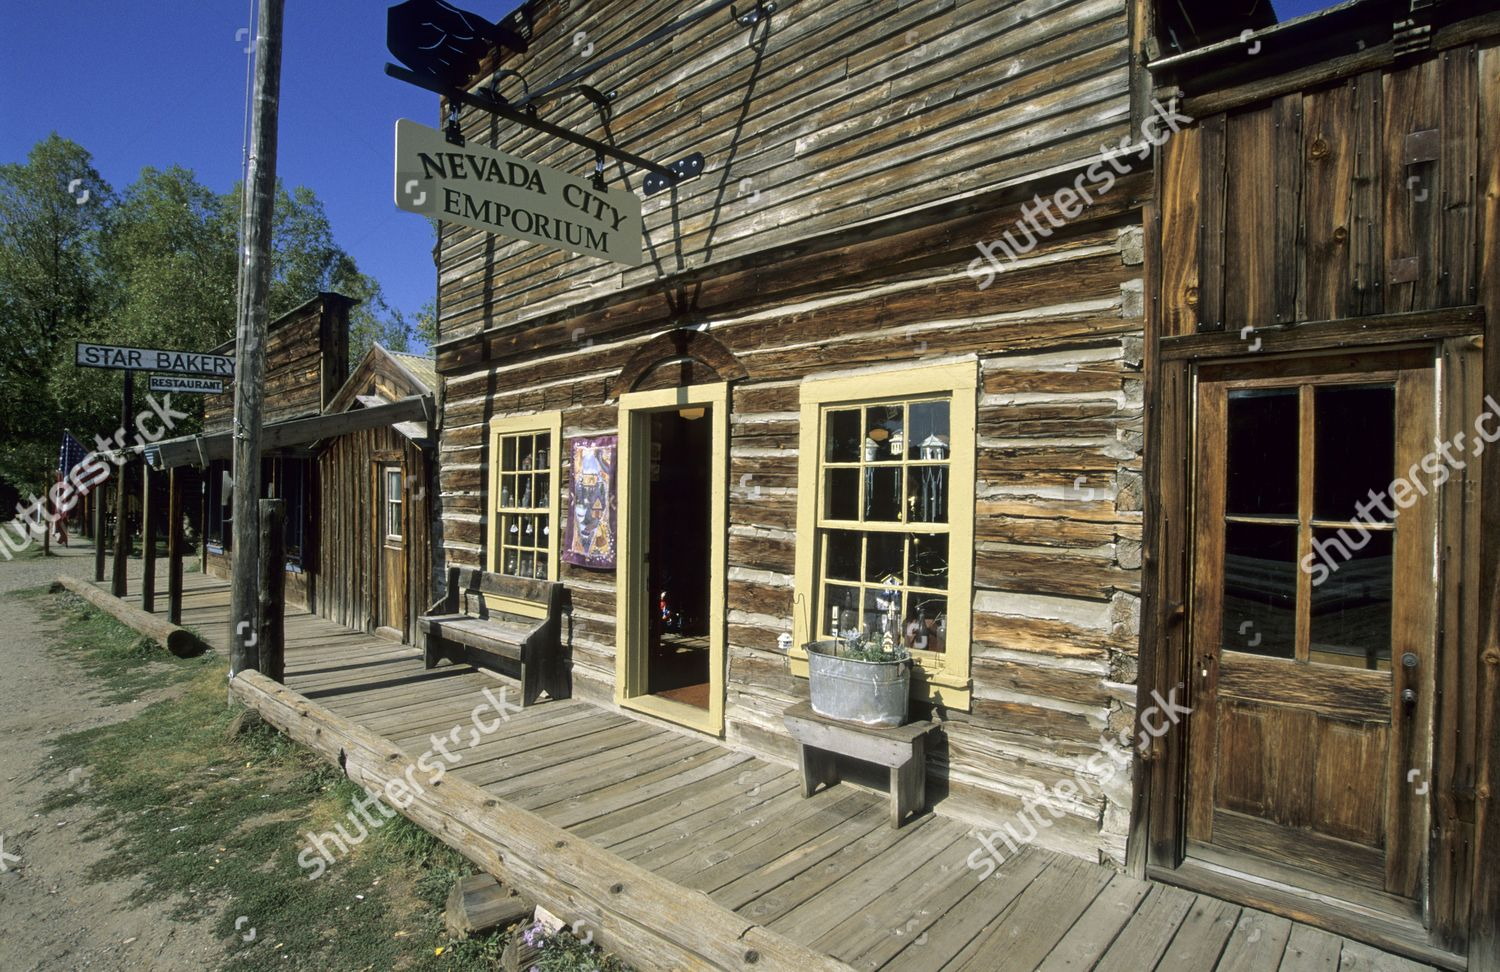 Historic Building Shop Nevada City Montana Usa Editorial Stock Photo Stock Image Shutterstock